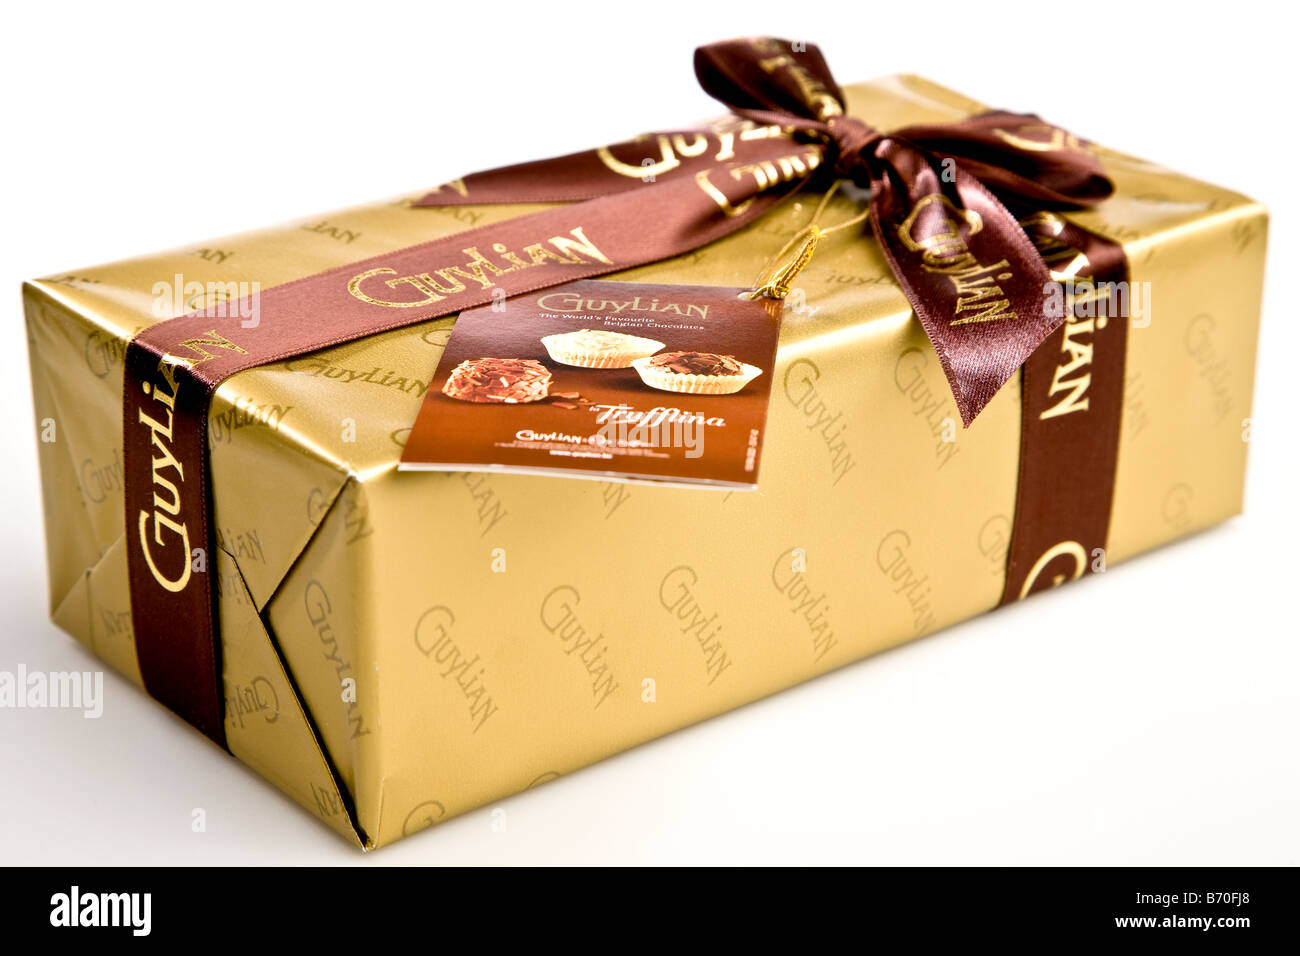 Wrapped up box of chocolates - Stock Image